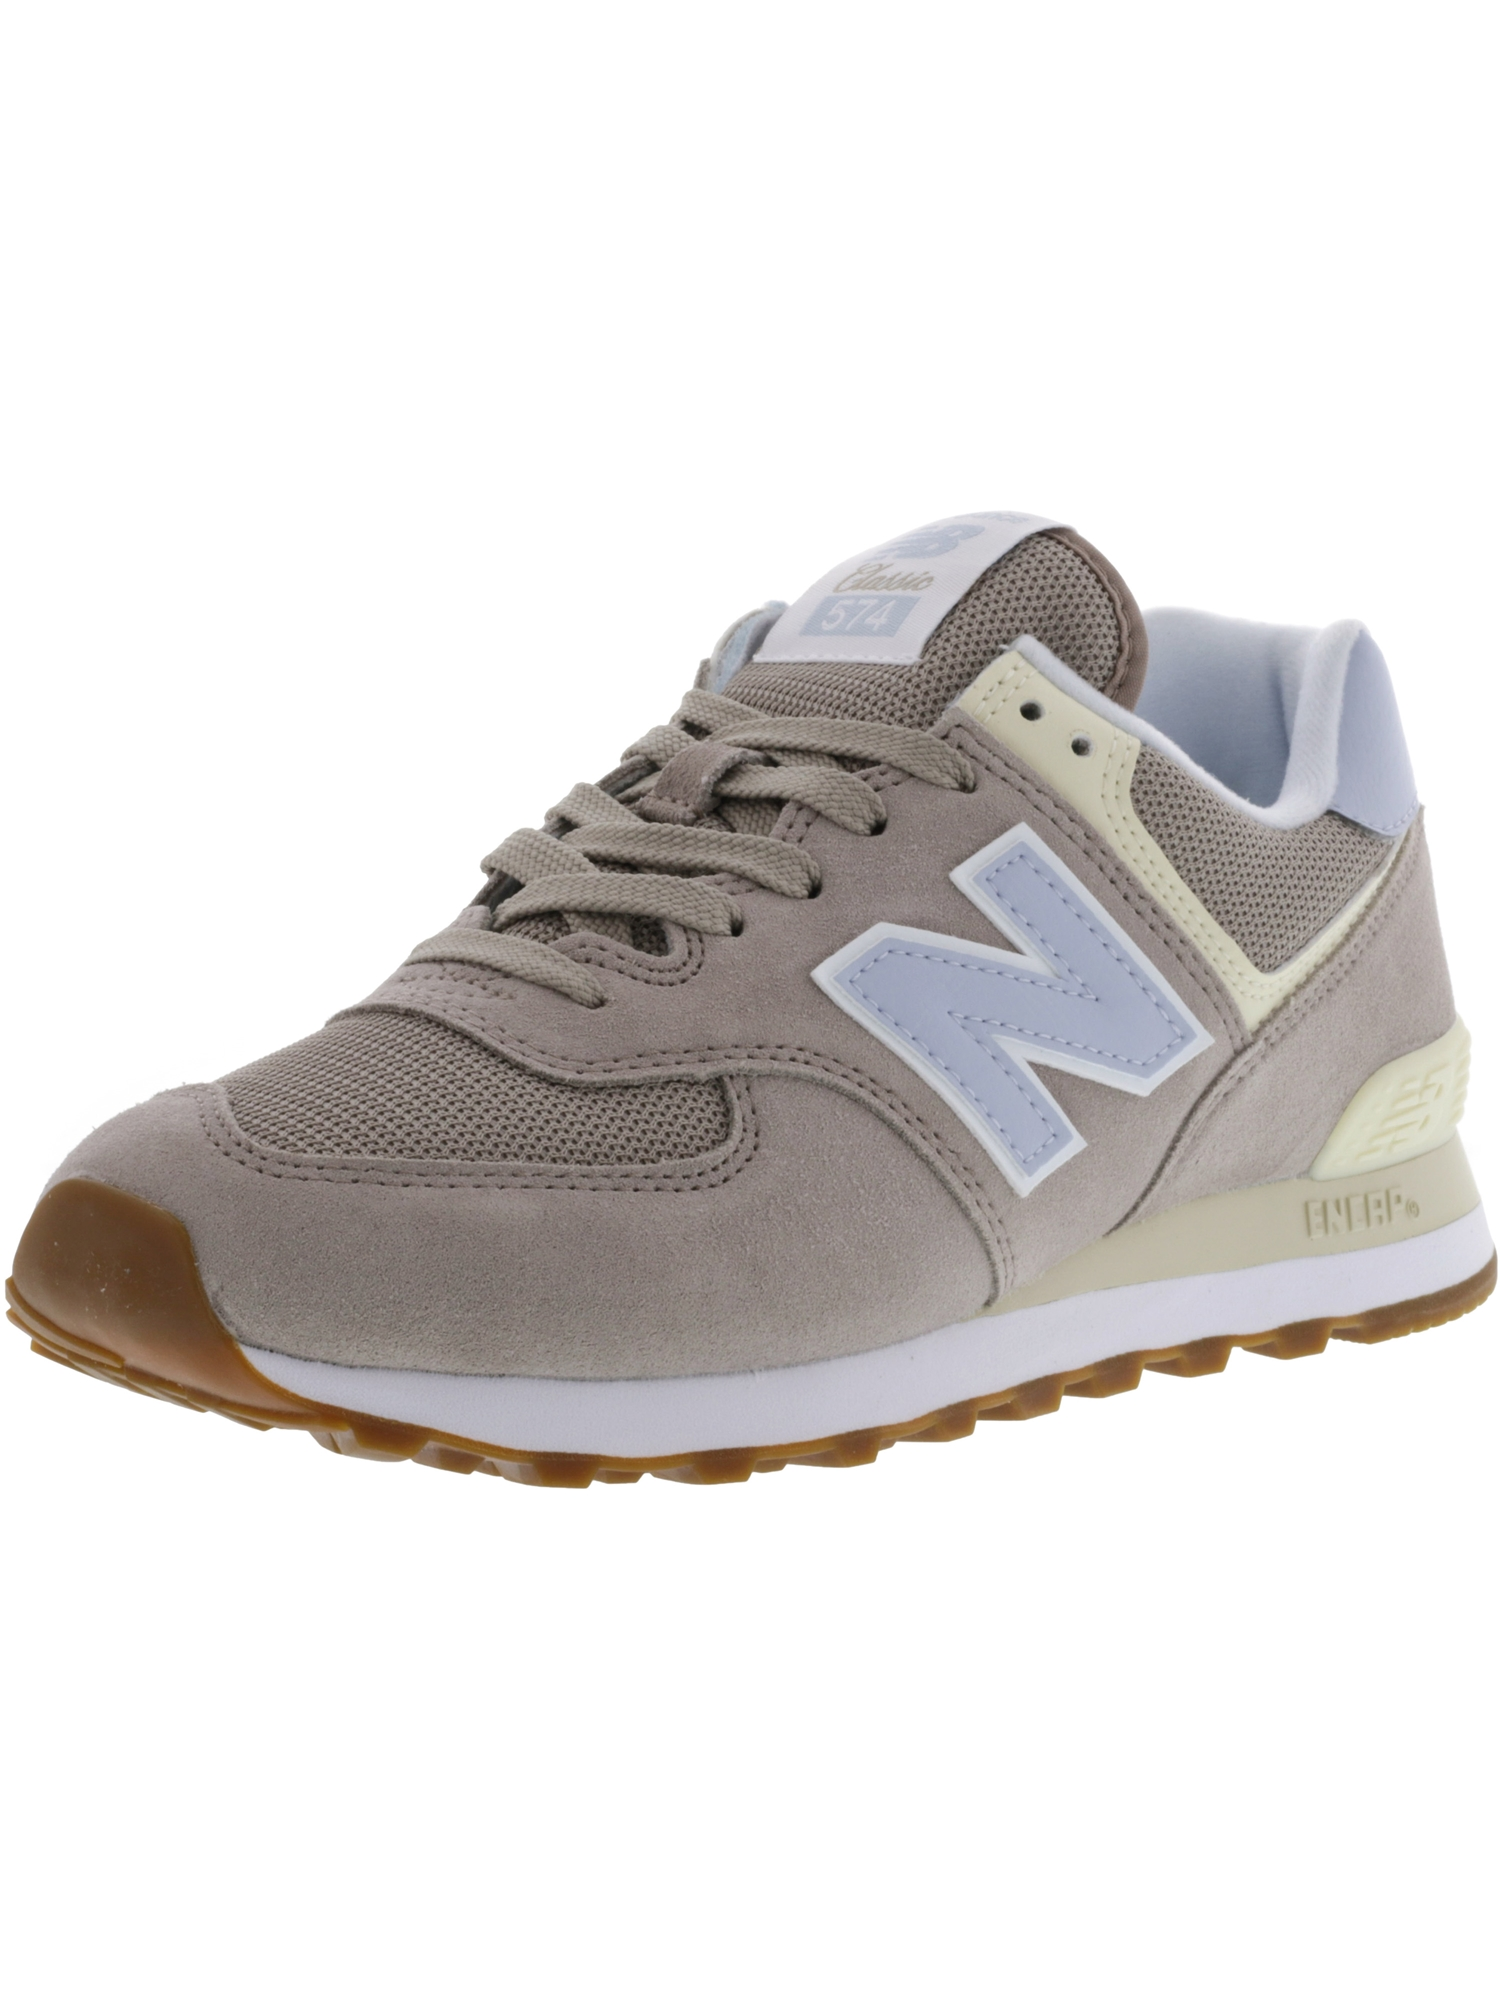 f9208846ab10 New Balance Women s L574 Nmb Ankle-High Leather Fashion Sneaker - 6.5M